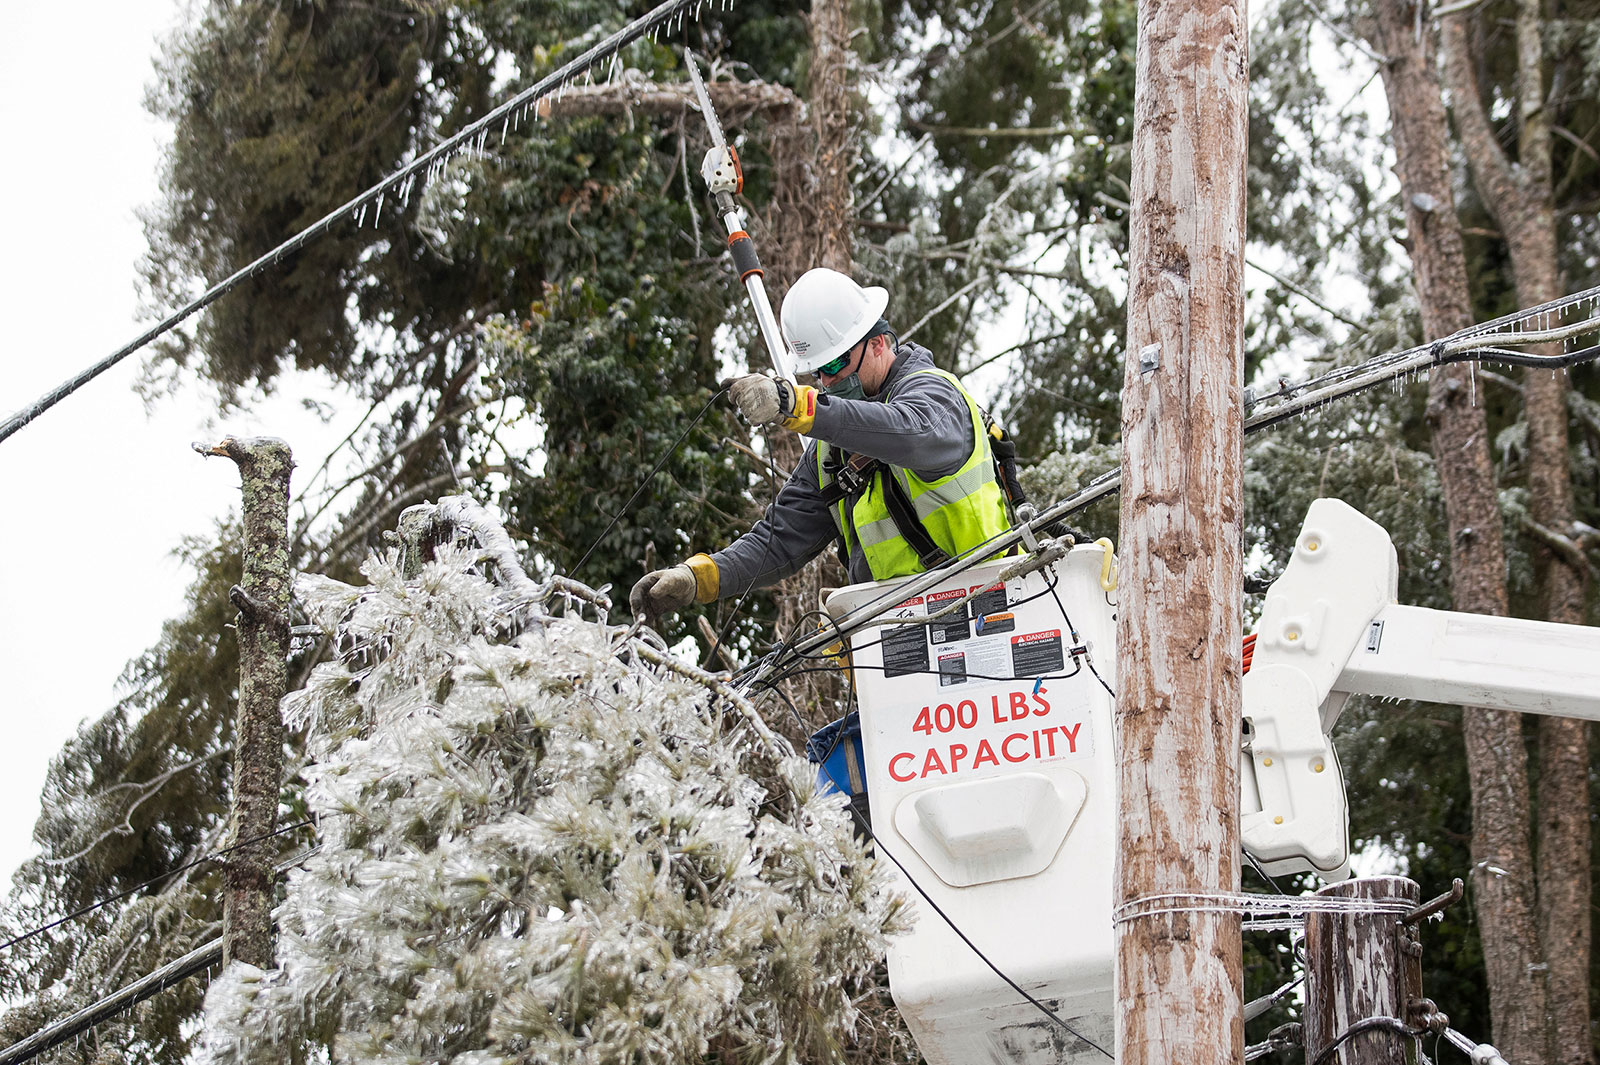 A worker cuts tree branches away from a power line in Huntington, West Virginia, on Wednesday, February 17.